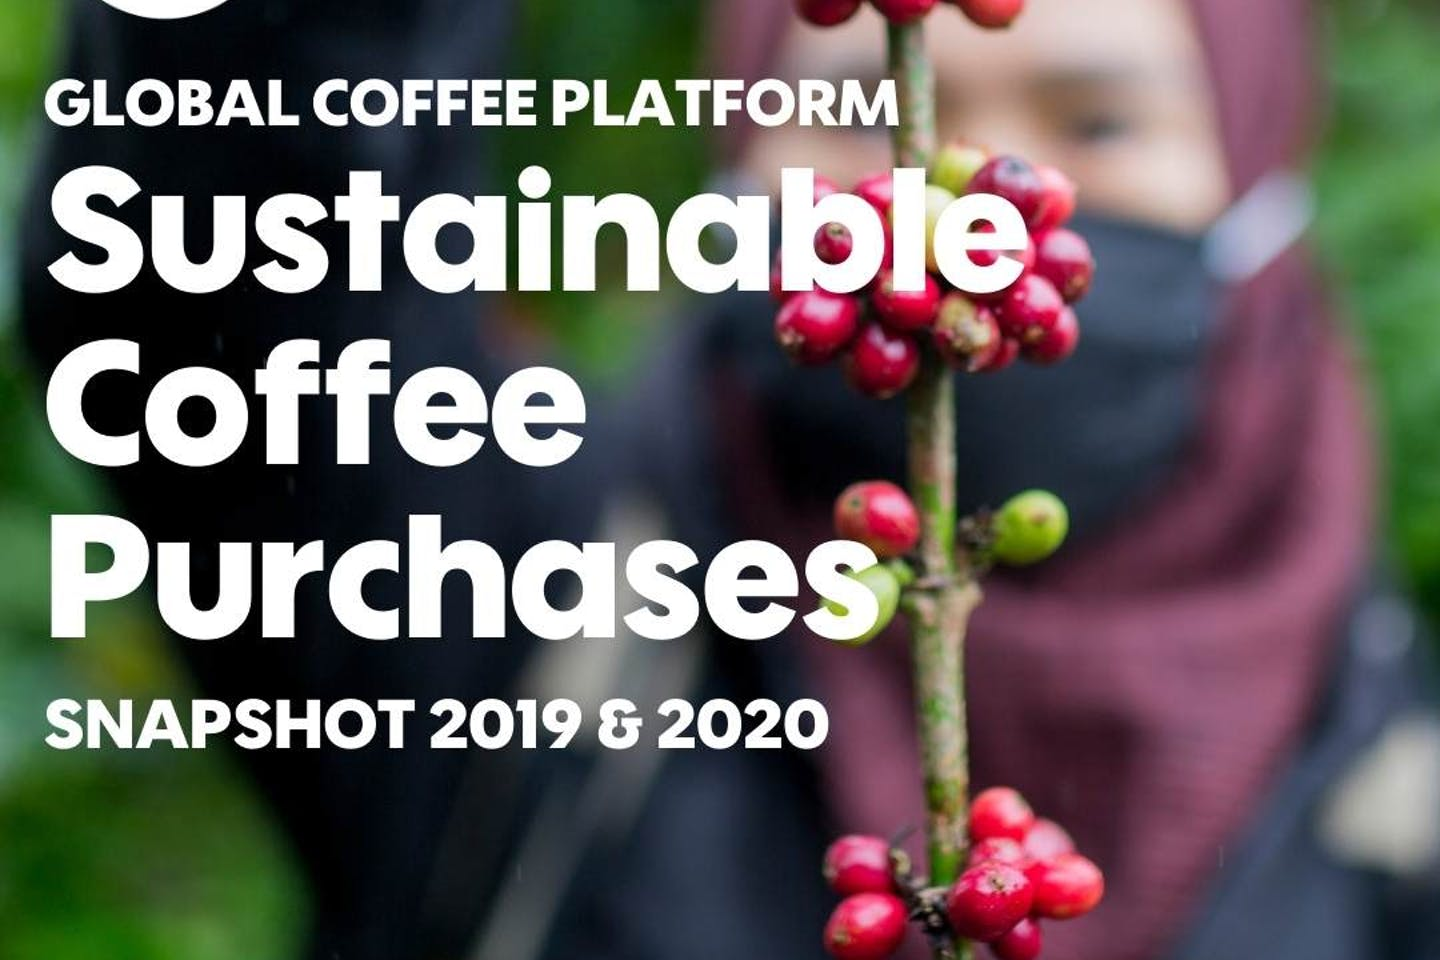 JDE Peet's, Melitta Group, and Nestlé share progress with sustainability in Global Coffee Platform Report